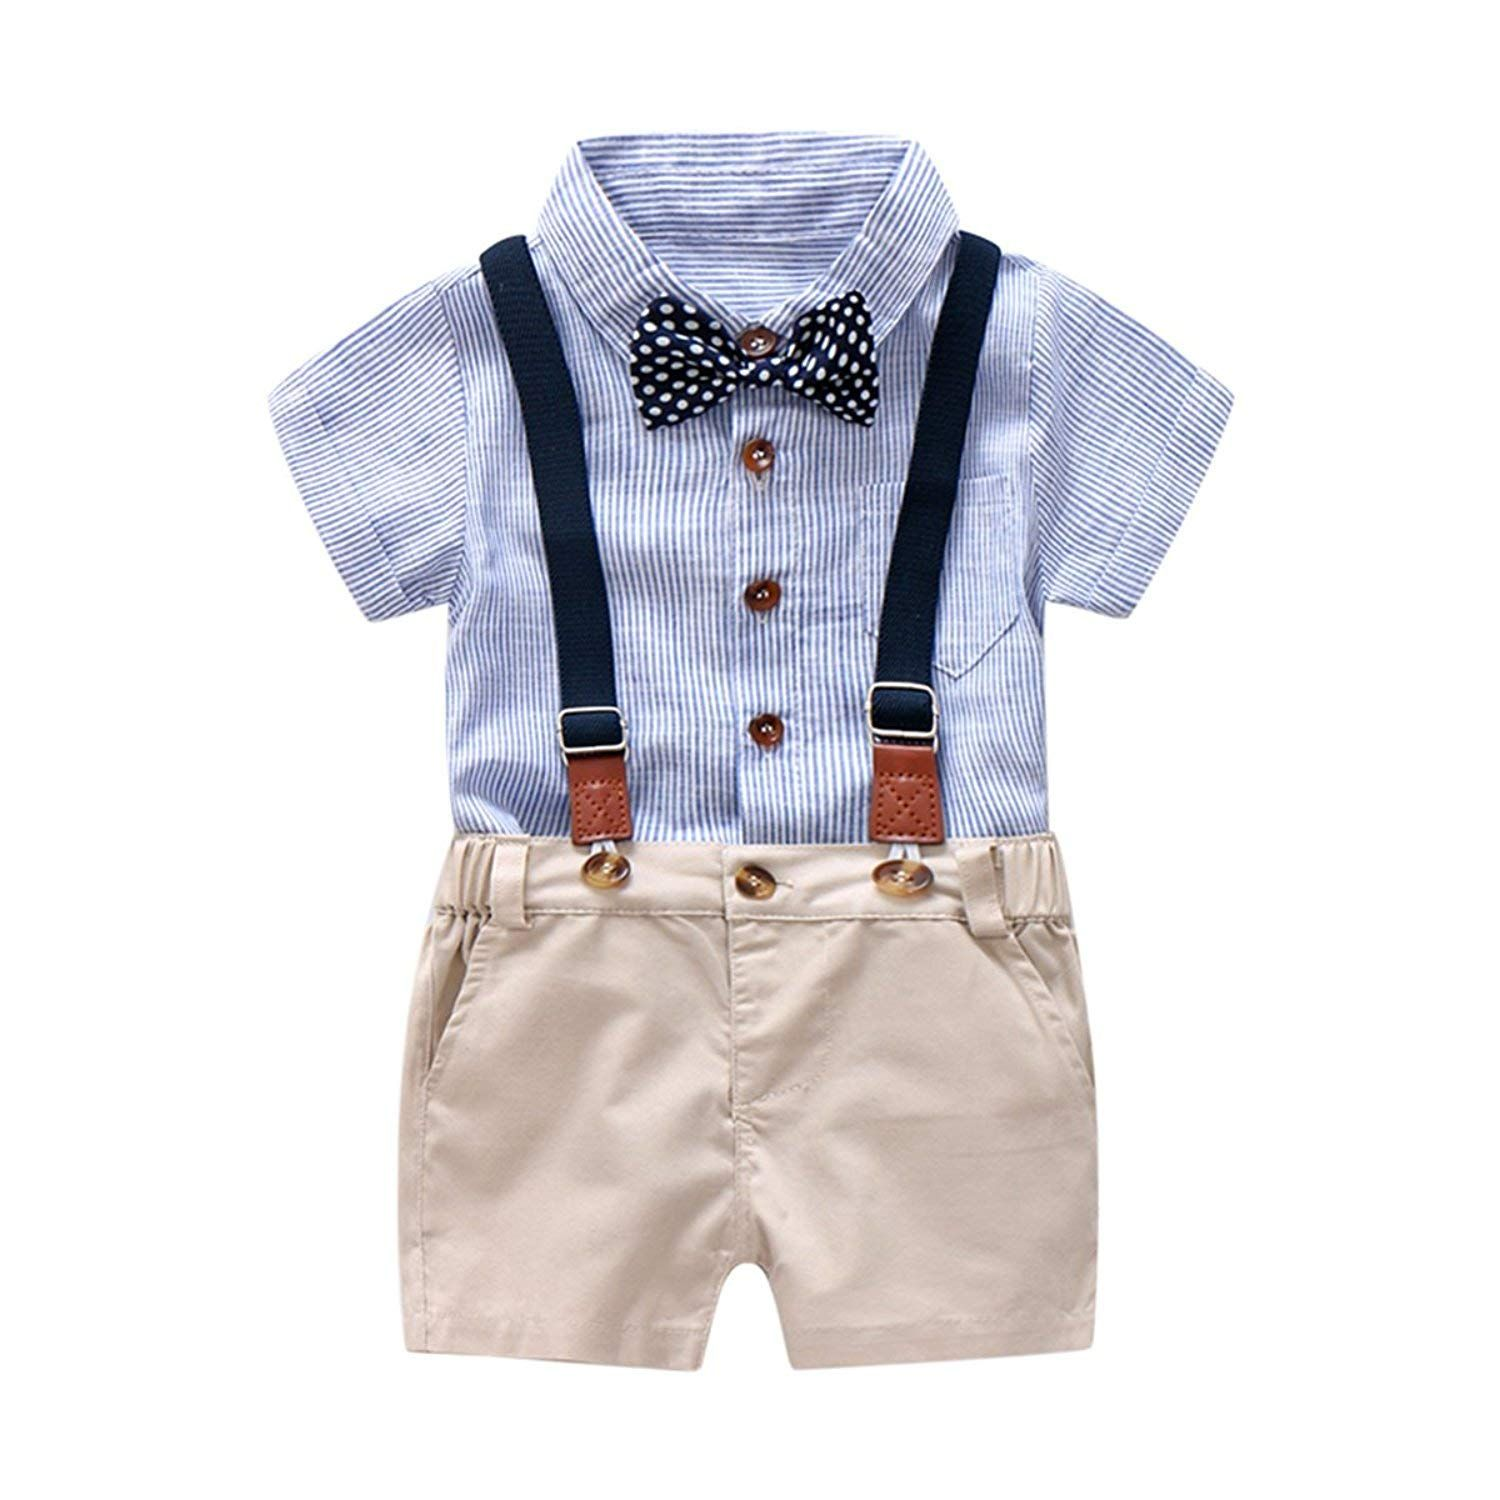 Baby Boys Gentleman Outfits Suits Infant Short Sleeve Shirt+Bib Pants+Bow Tie Overalls Clothes Set